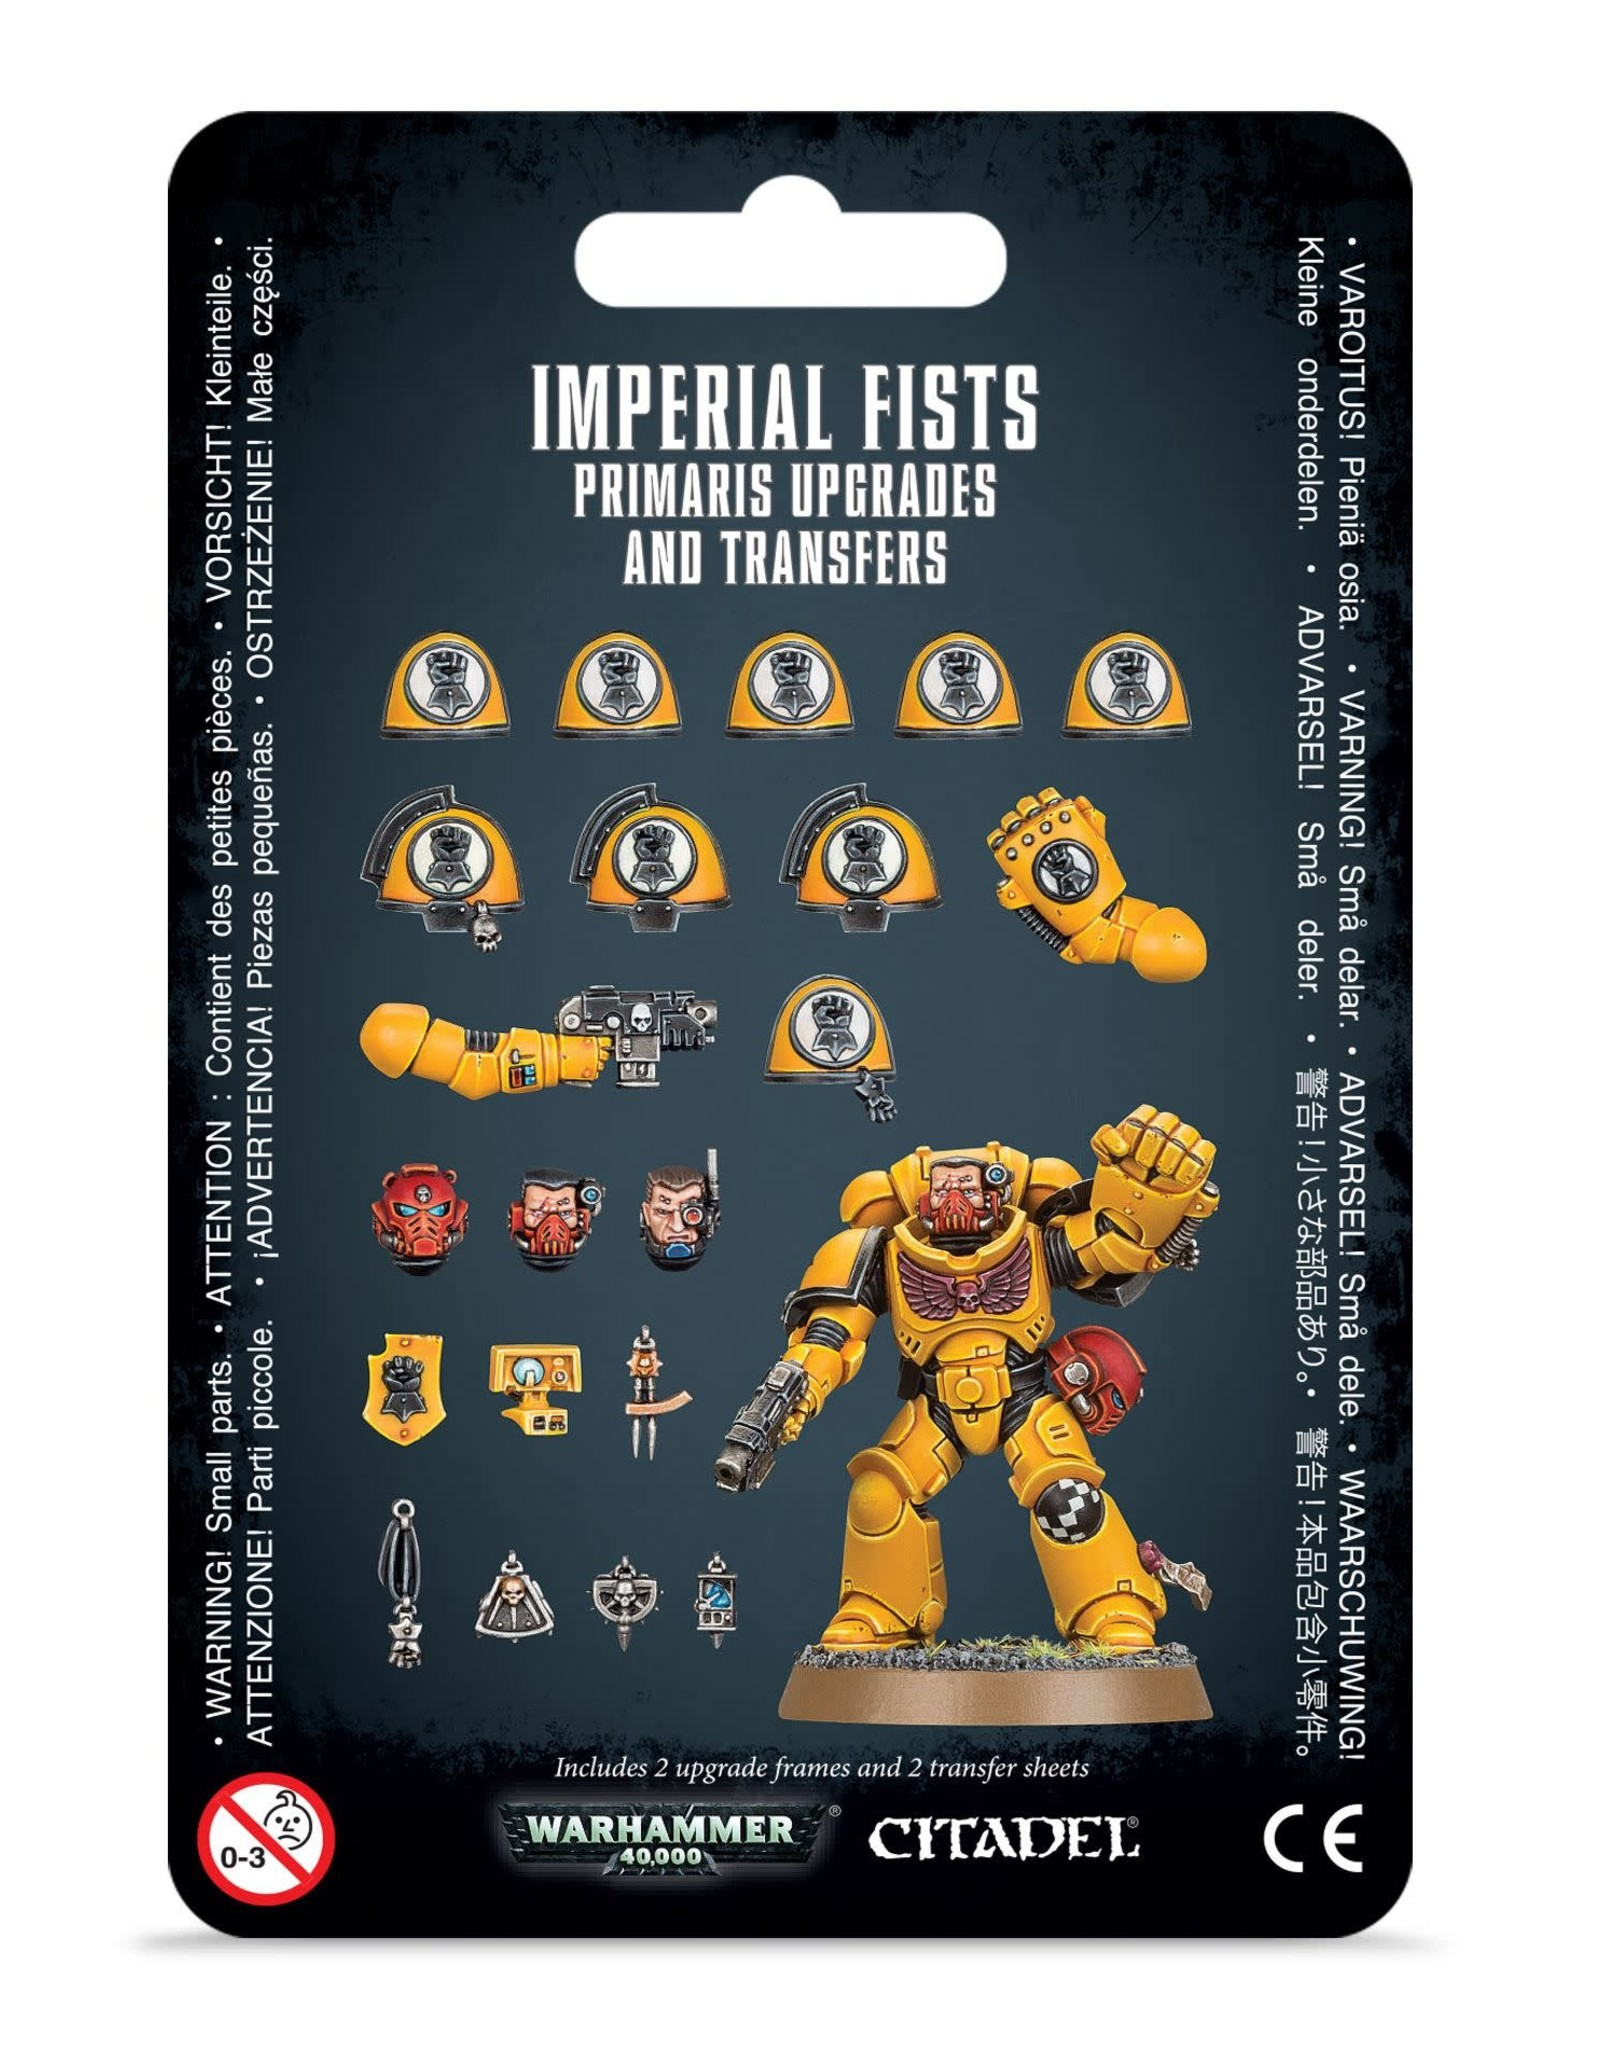 Warhammer 40K Imperial Fists Primaris Upgrades and Transfers